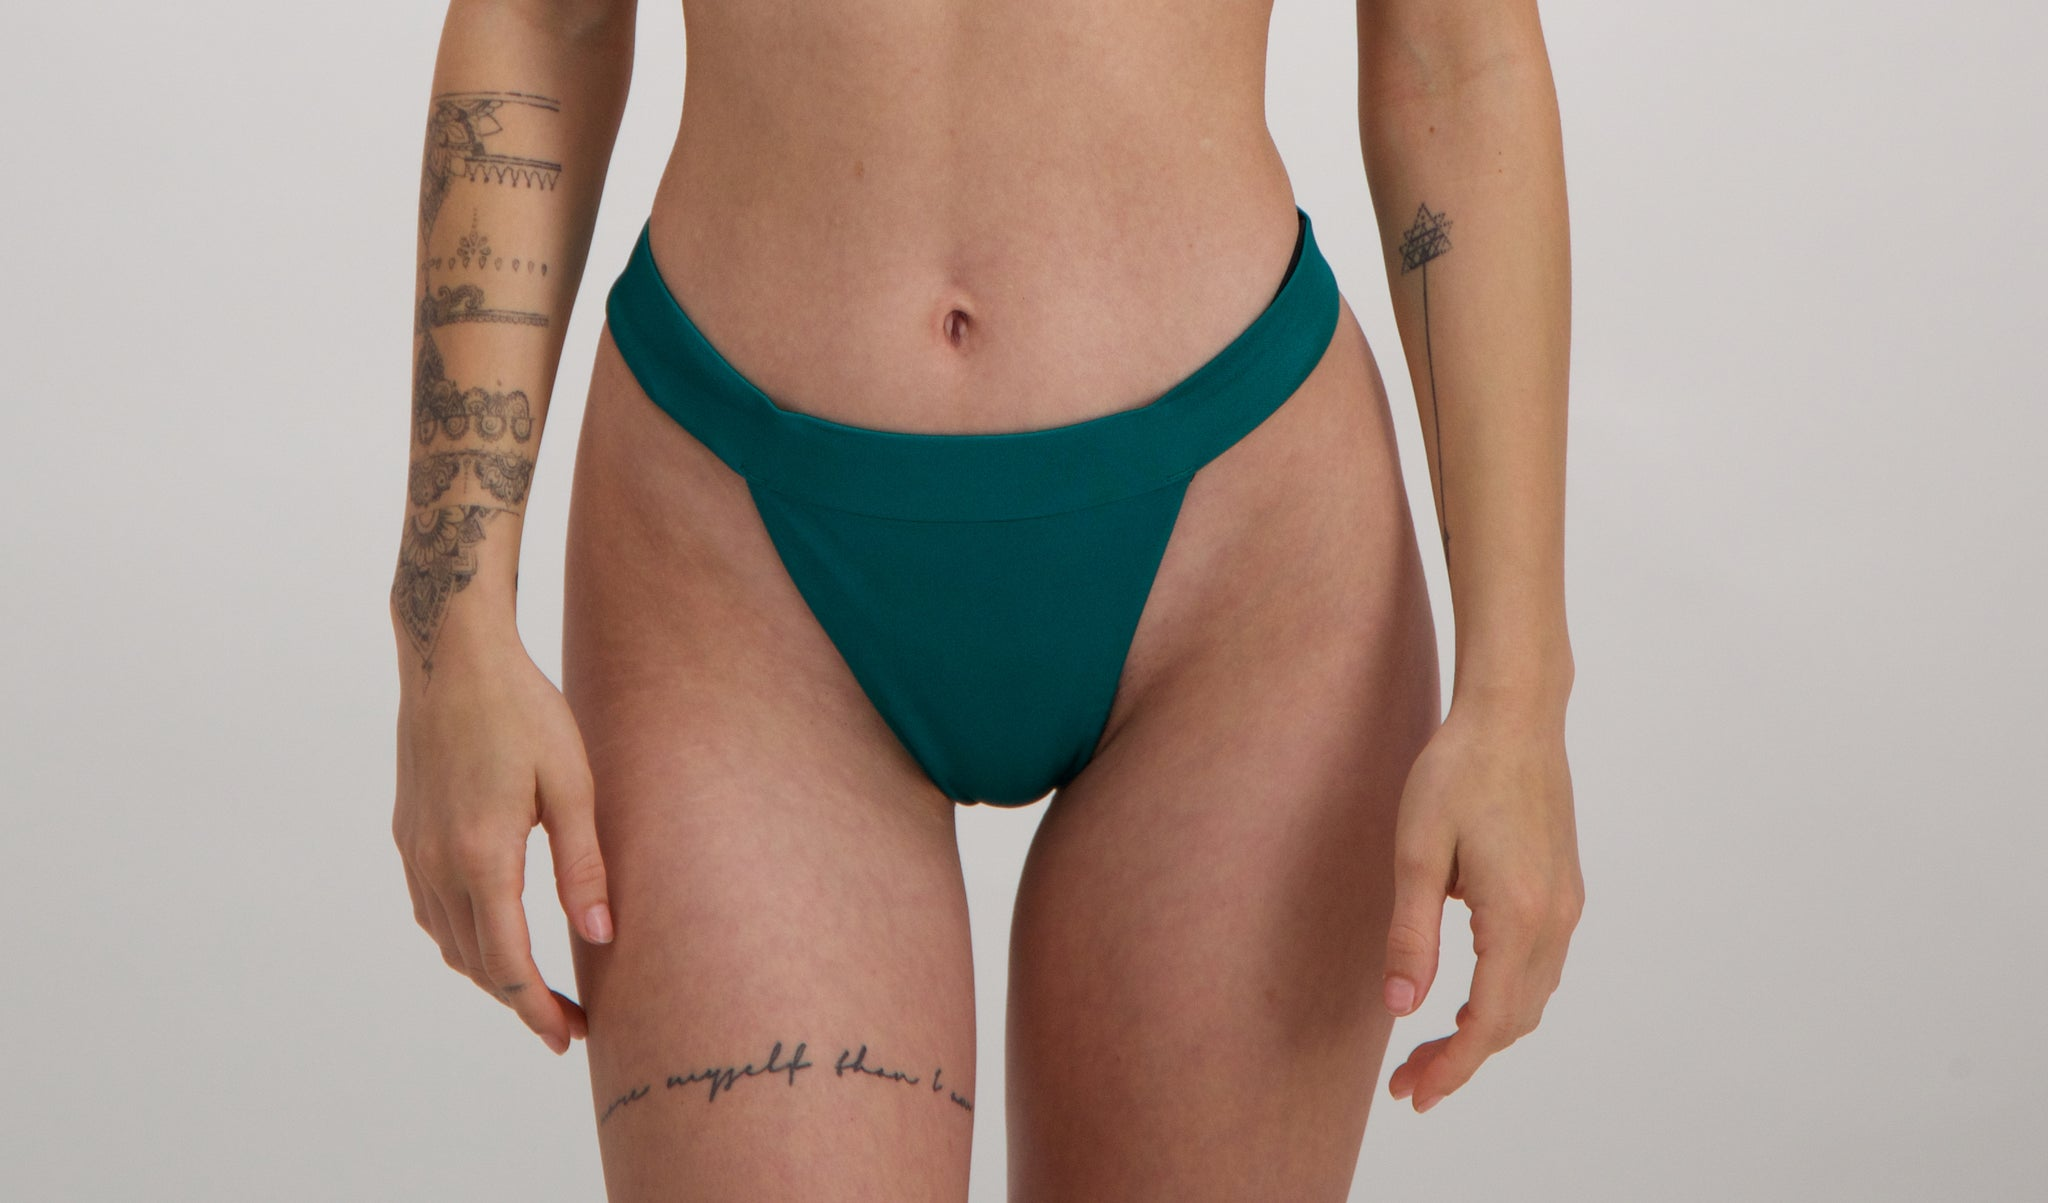 Iris bikini bottom 2.0 in Emerald